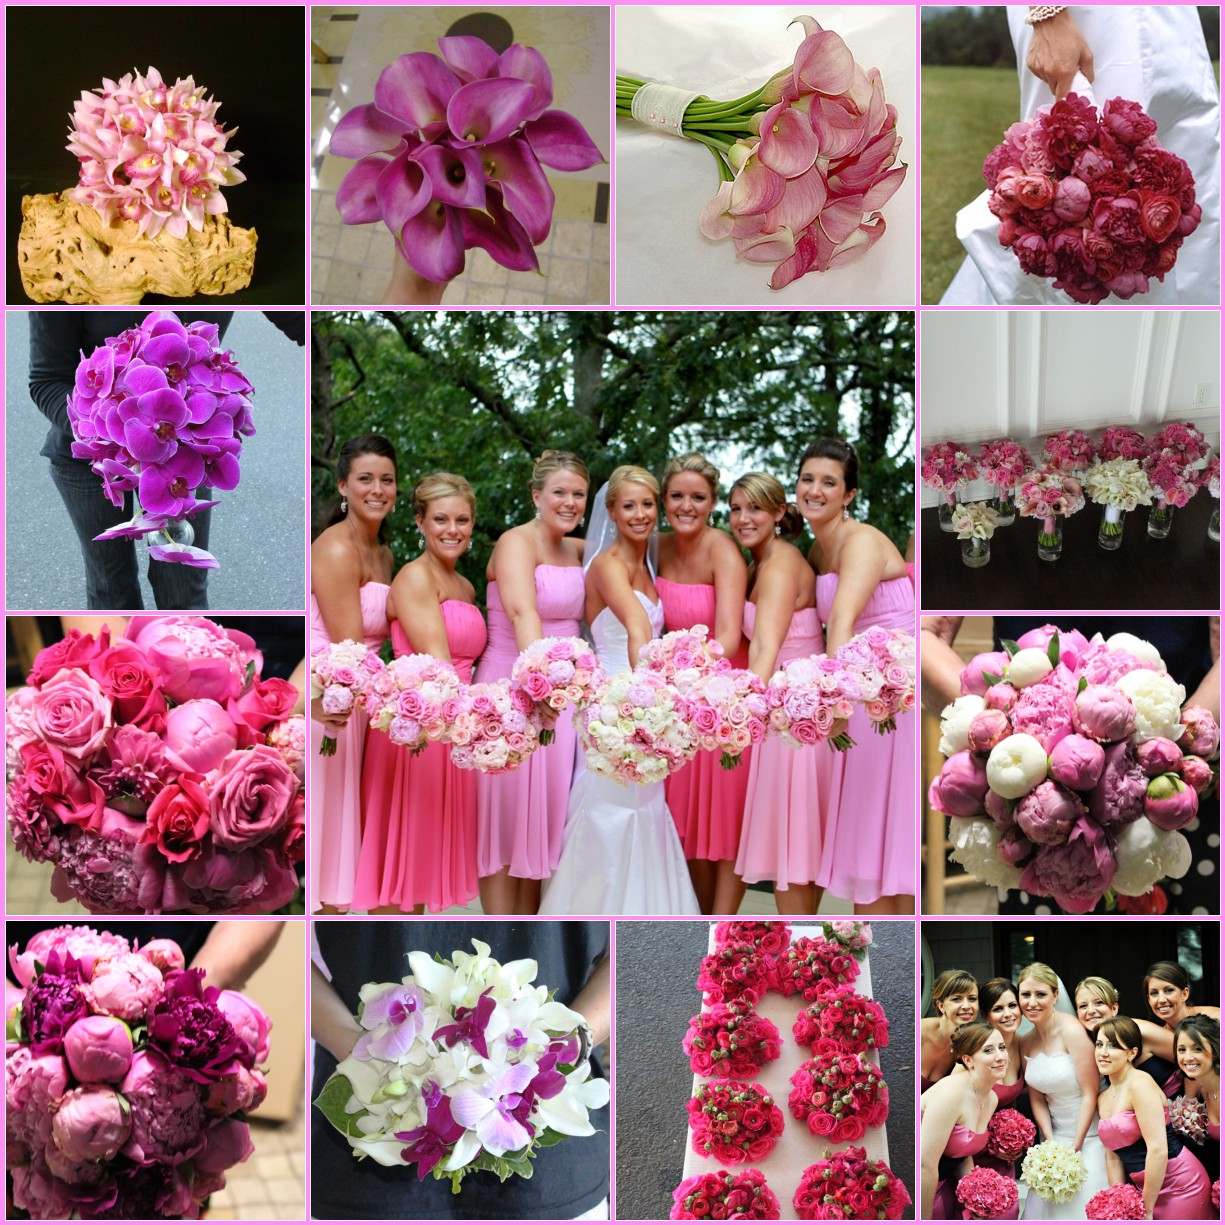 Wedding Ideas: Pink And White With A Touch Of Bling